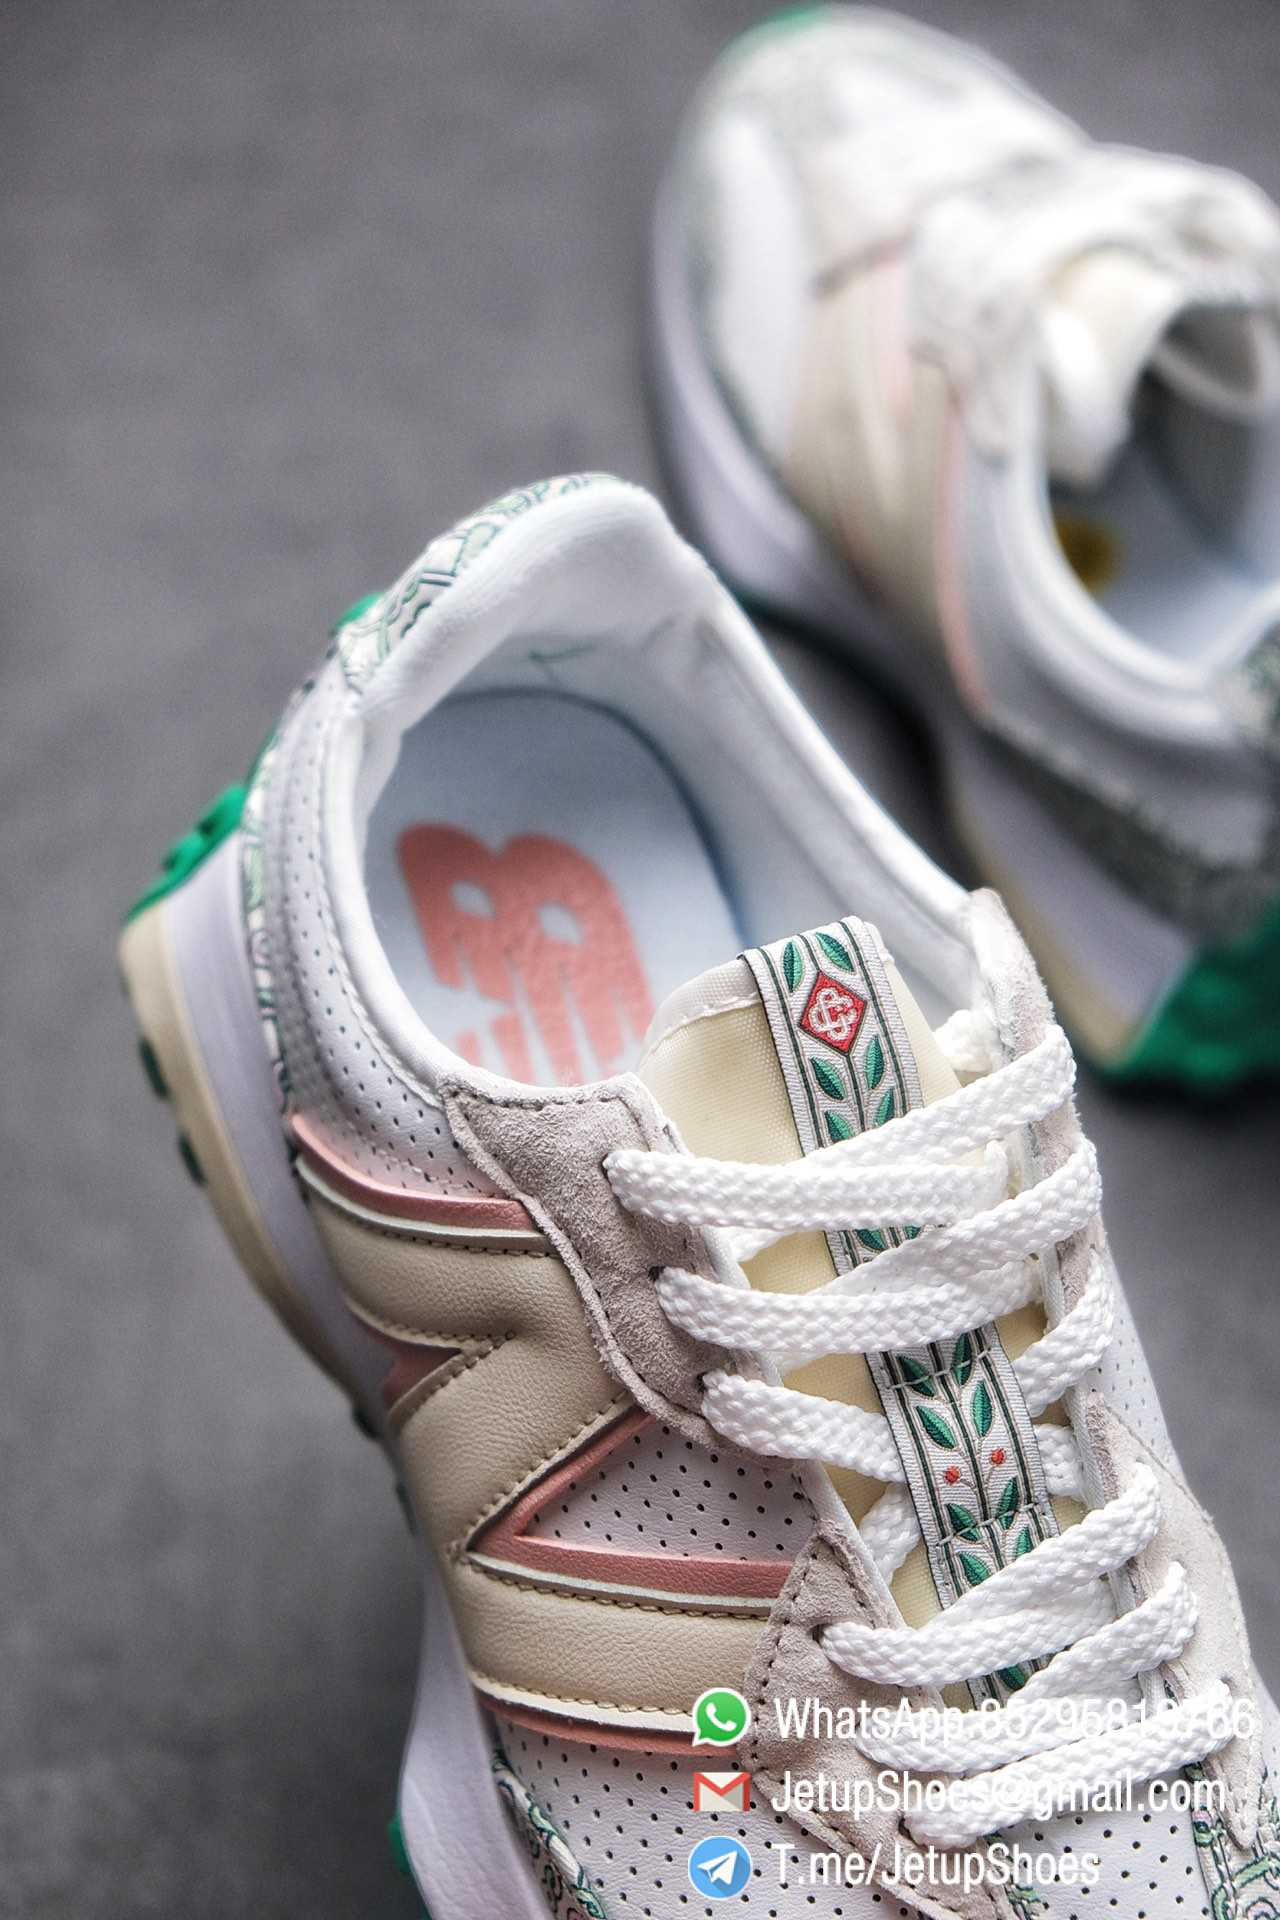 Replica Sneakers New Balance 327 Casablanca x 327 Munsell White Green Retro Running Shoes SKU MS327CAB Best RepSneakers 06